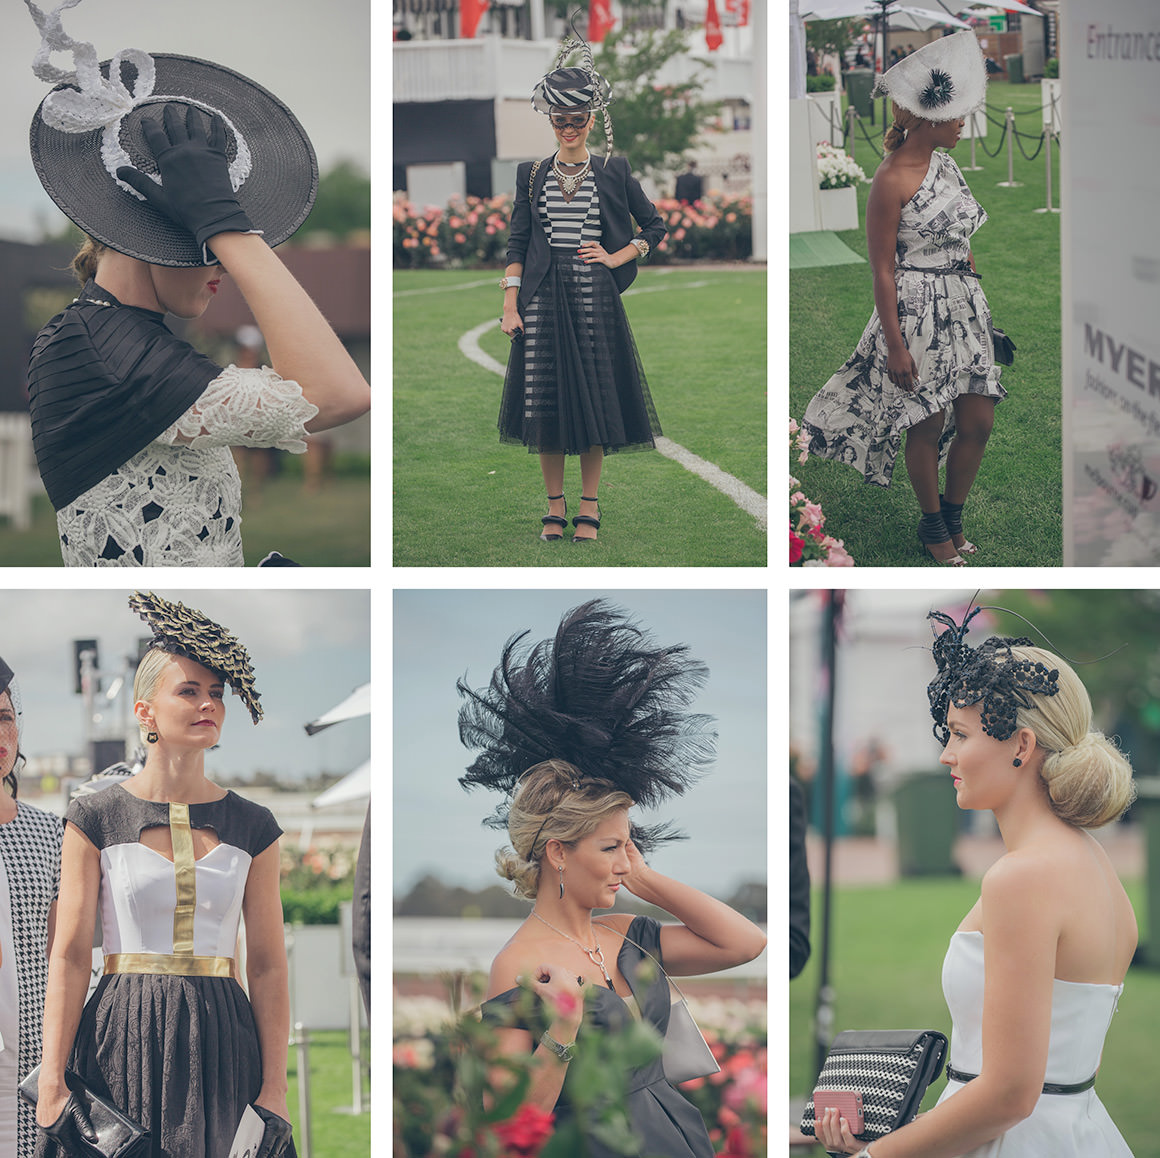 spring racing fashion 2014